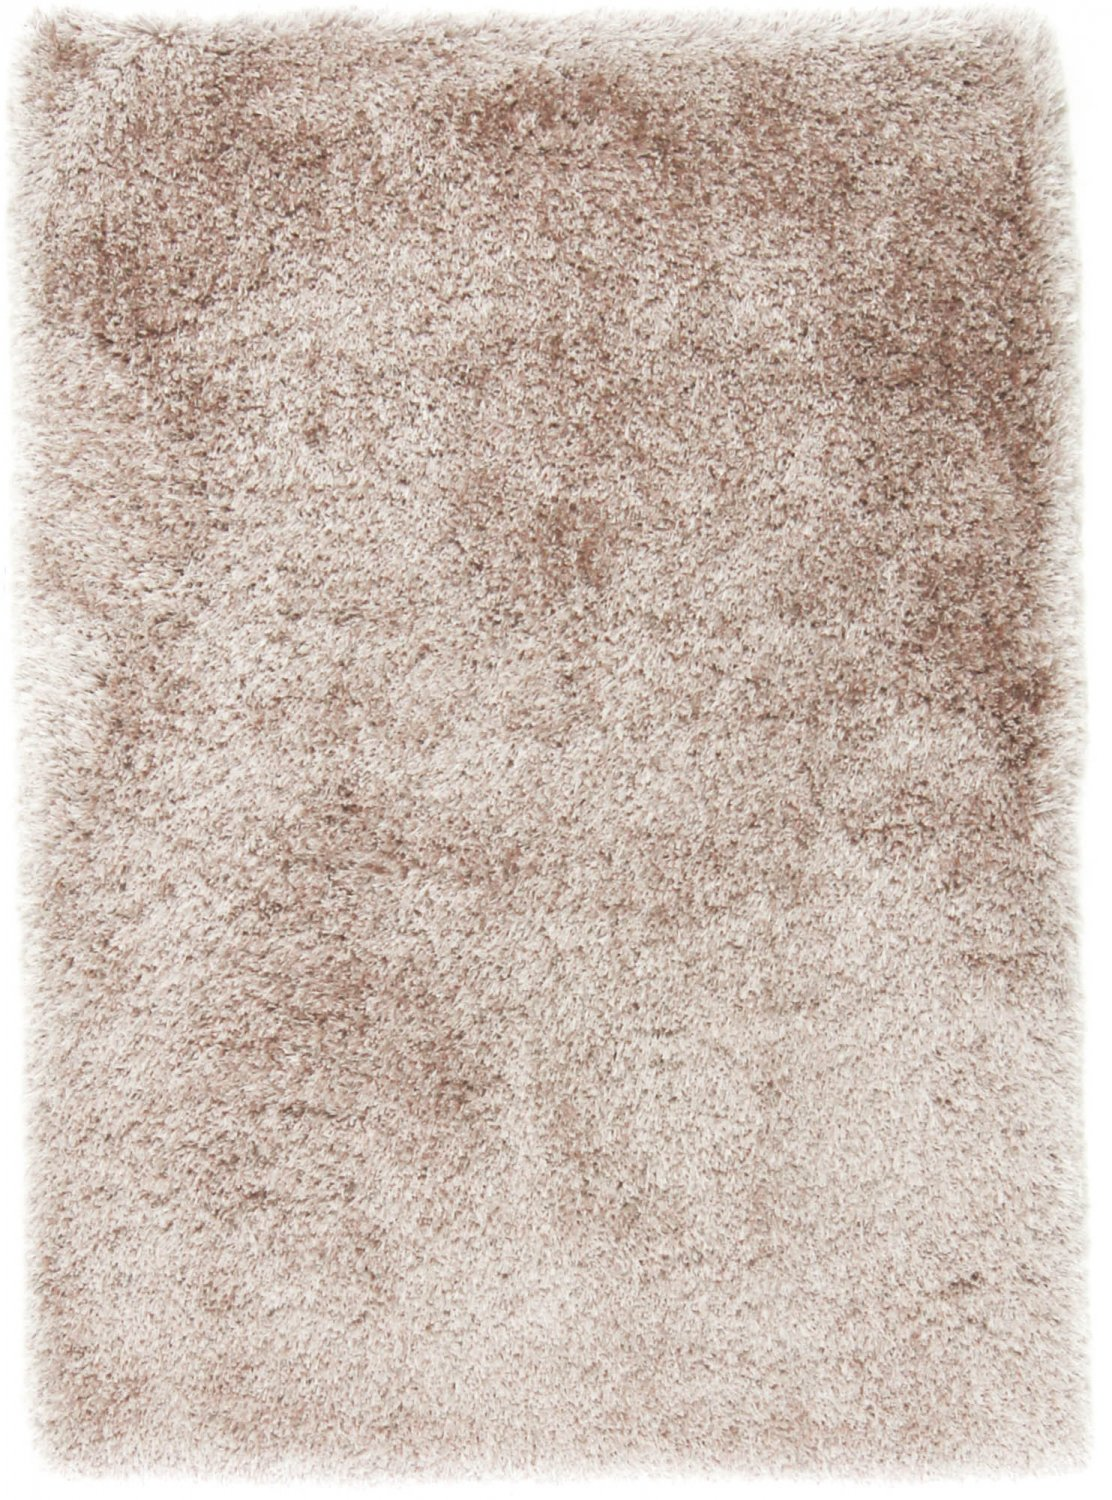 Shaggy rugs - Soft Deluxe (beige)